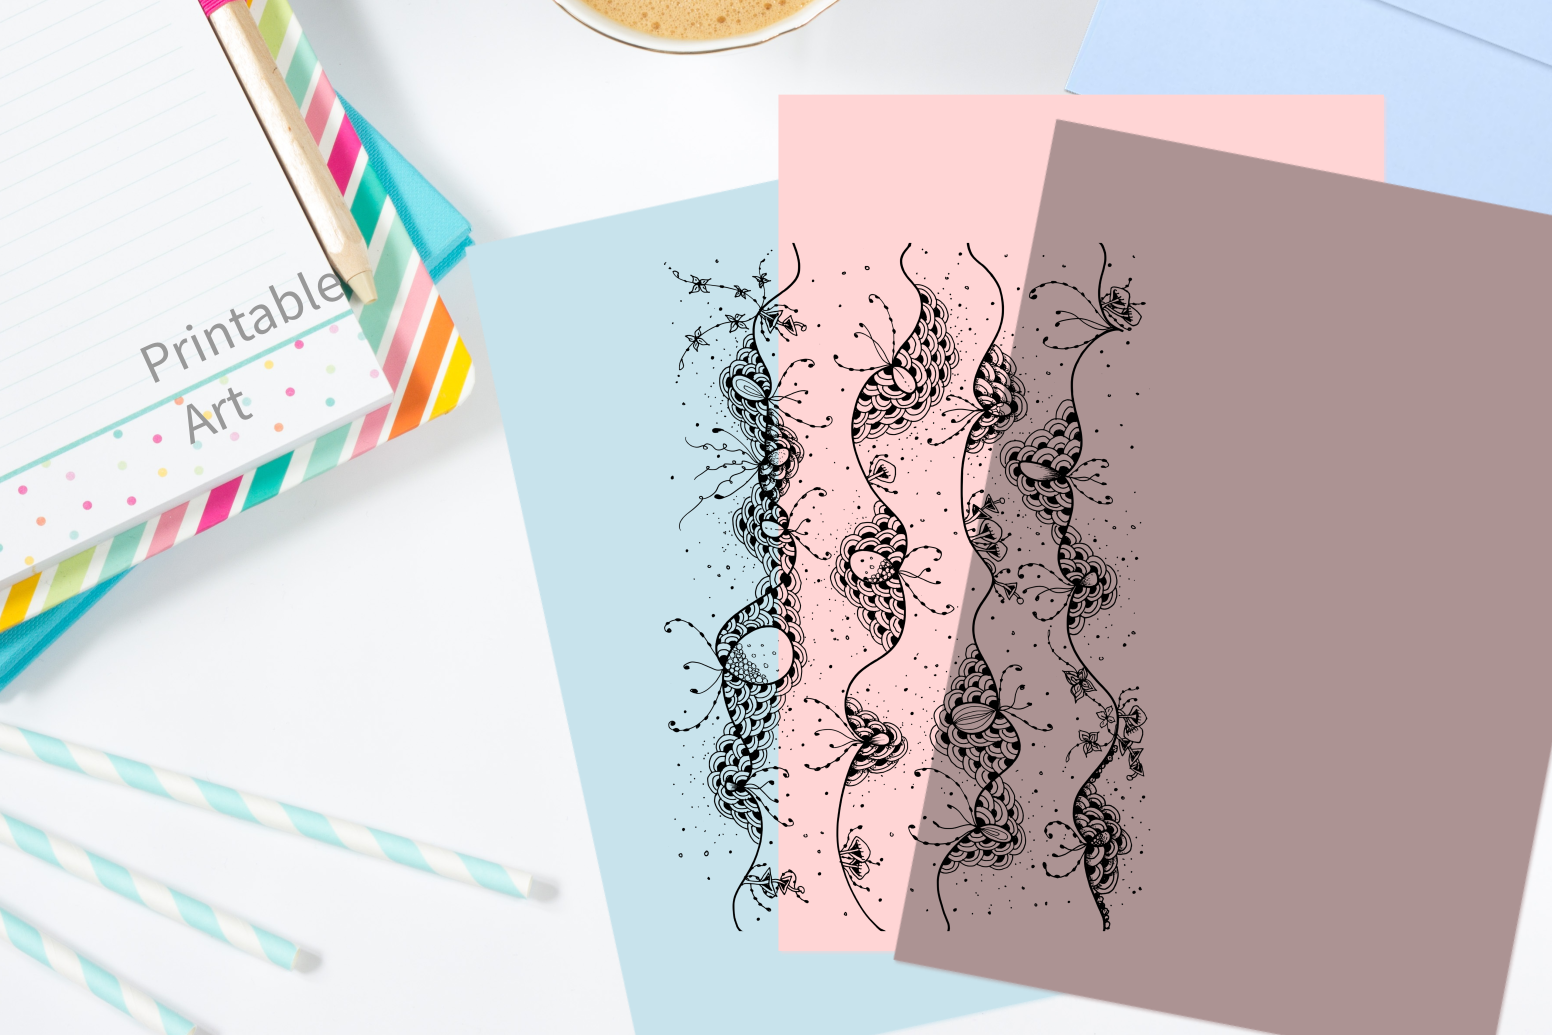 Abstract Floral Art, A1, SVG example image 4